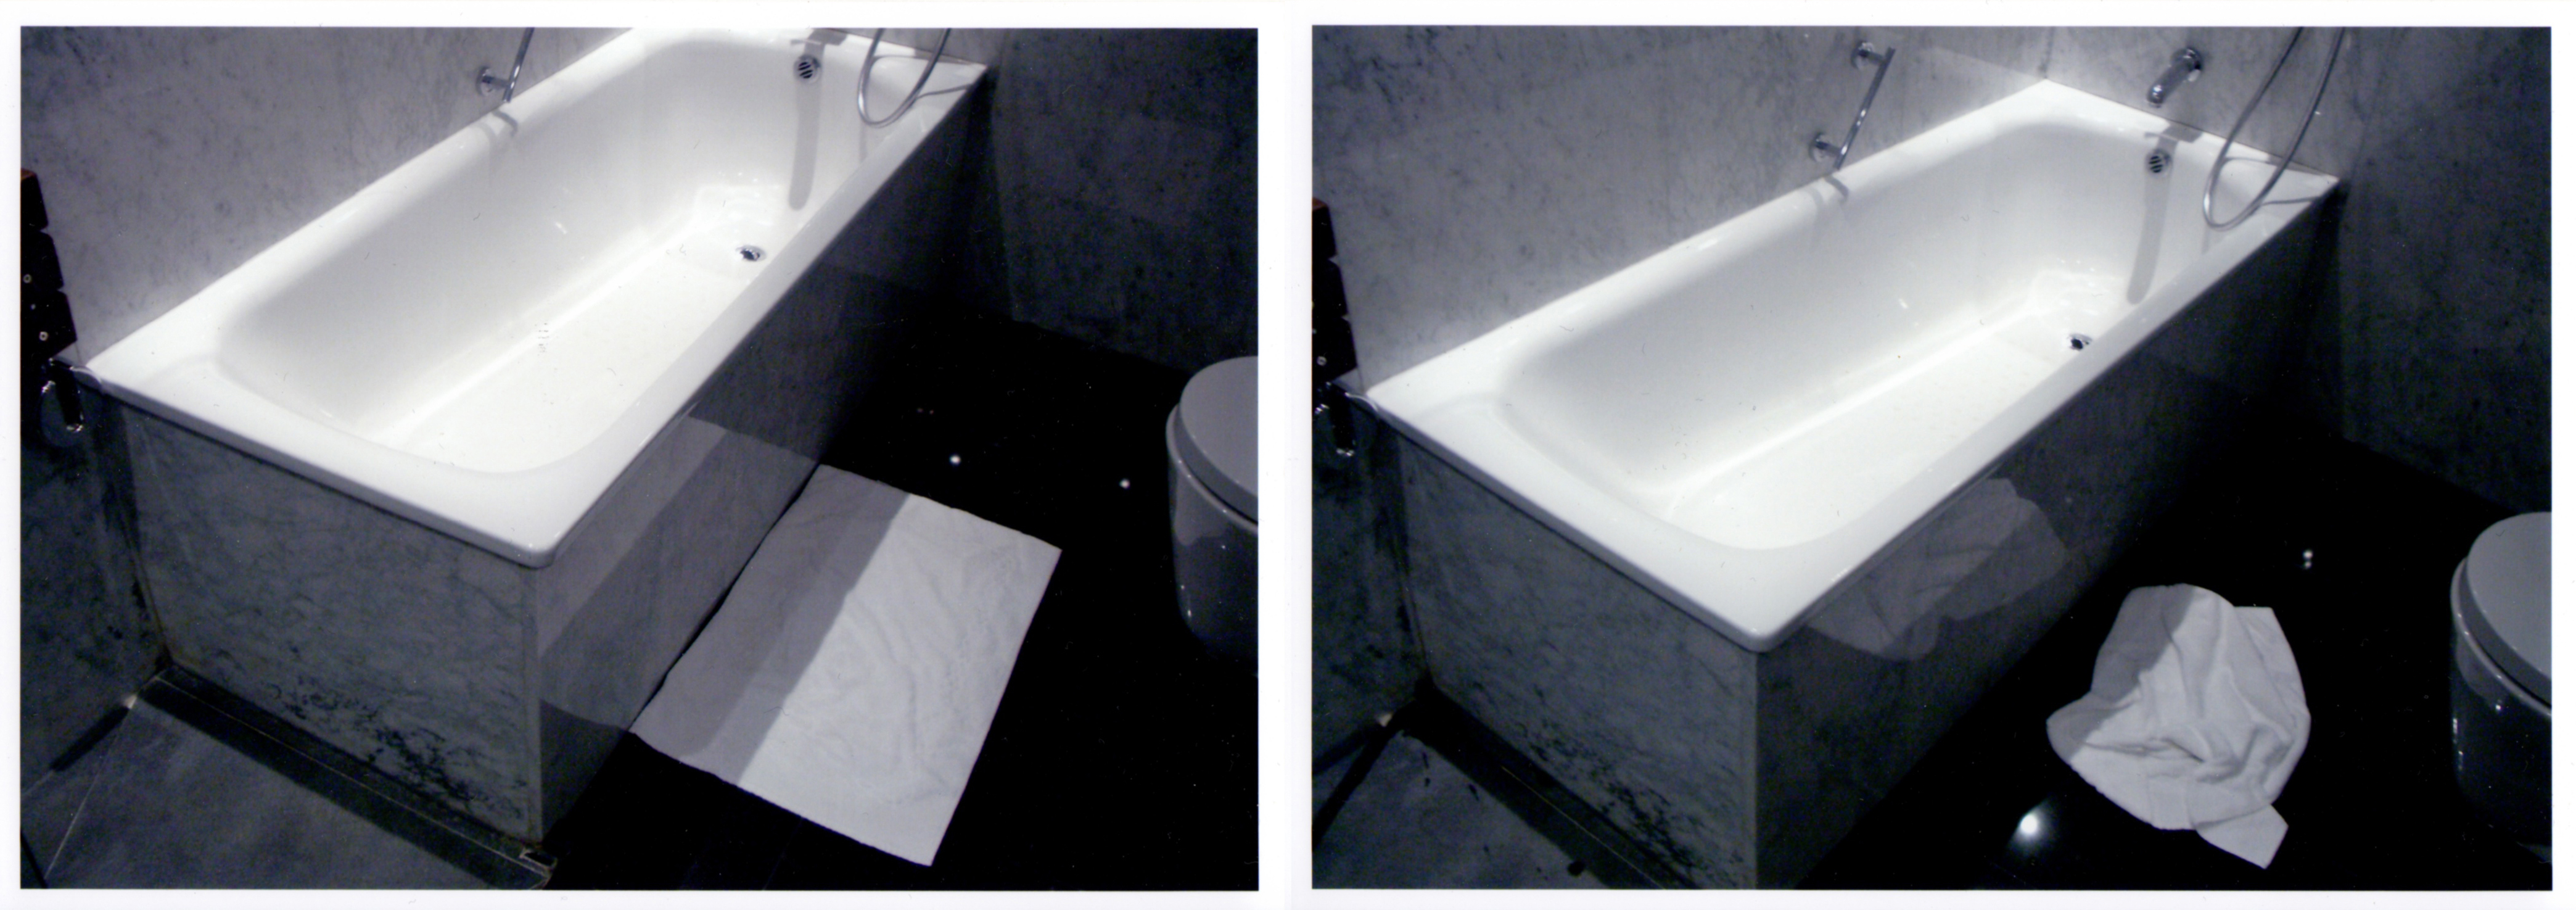 Before_After (Badewanne), 1990 |  | ProjecteSD